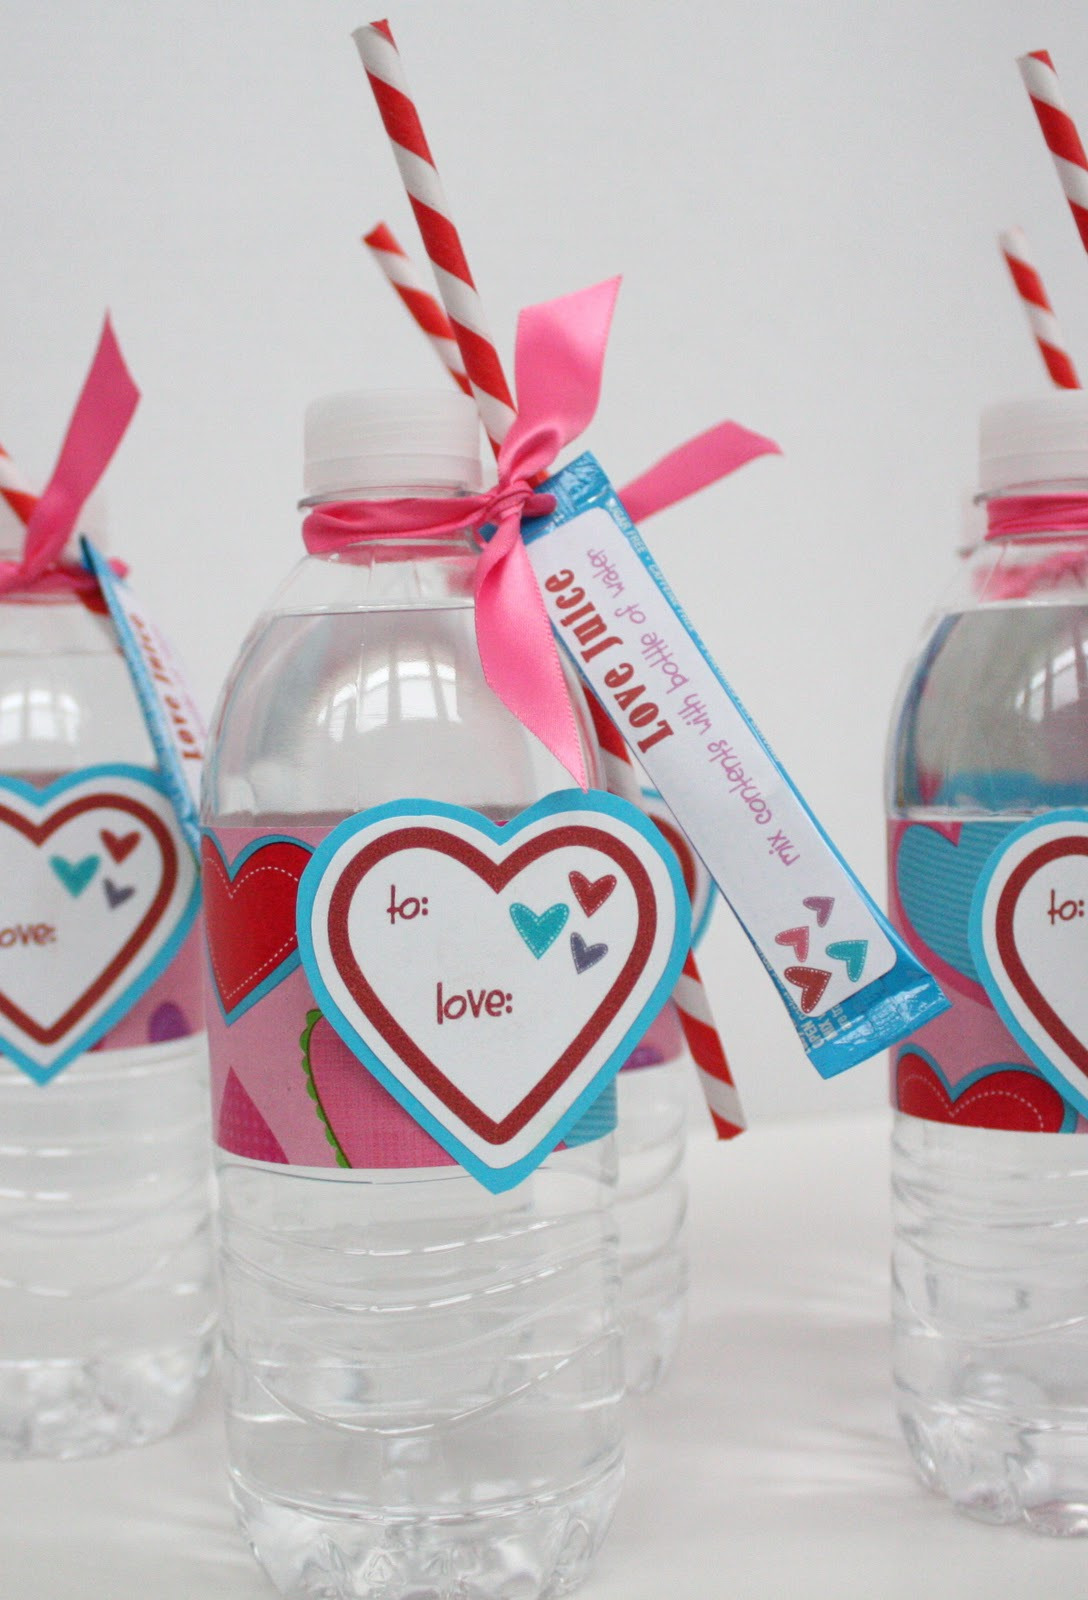 Top 5 Healthy, No Candy Valentine Ideas – Mimi's Fit Foods